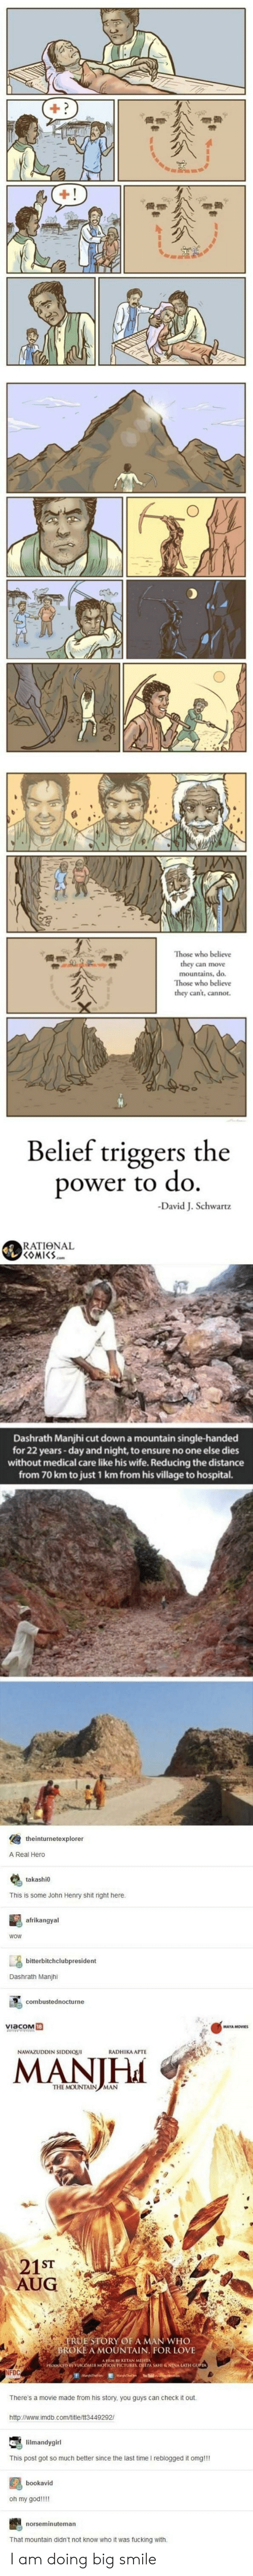 Fucking, God, and Love: +!  Those who believe  they can move  mountains, do.  Those who believe  they can't, cannot.  Belief triggers the  power to do  -David J. Schwartz  RATIONAL  COMIKS  Dashrath Manjhi cut down a mountain single-handed  for 22 years-day and night, to ensure no one else dies  without medical care like his wife. Reducing the distance  from 70 km to just 1 km from his village to hospital  theinturnetexploren  Real Hero  takashi0  This is some John Henry shit right here  afrikangyal  WOW  bitterbitchclubpresident  Dashrath Manjhi  combustednocturne  ViacOM  NAWAZUDDIN SIDDIOUL  RADHIKA APTE  MANIH  THE MOUNTAIN MAN  21 ST  AUG  4PRUE STORY OF A MAN WHO  BROKE A MOUNTAIN, FOR LOVE  AHMBY KETAN MENTA  HOUCTD VIACOMIS MOTION FICTURES, DEEPA SAHI &NINA LATH GUPEA  There's a movie made from his story, you guys can check it out  http://www.imdb.com/title/tt3449292!  lilmandygirl  This post got so much better since the last time I reblogged it omg!!  bookavid  oh my god!!!!  norseminuteman  That mountain didn't not know who it was fucking with I am doing big smile